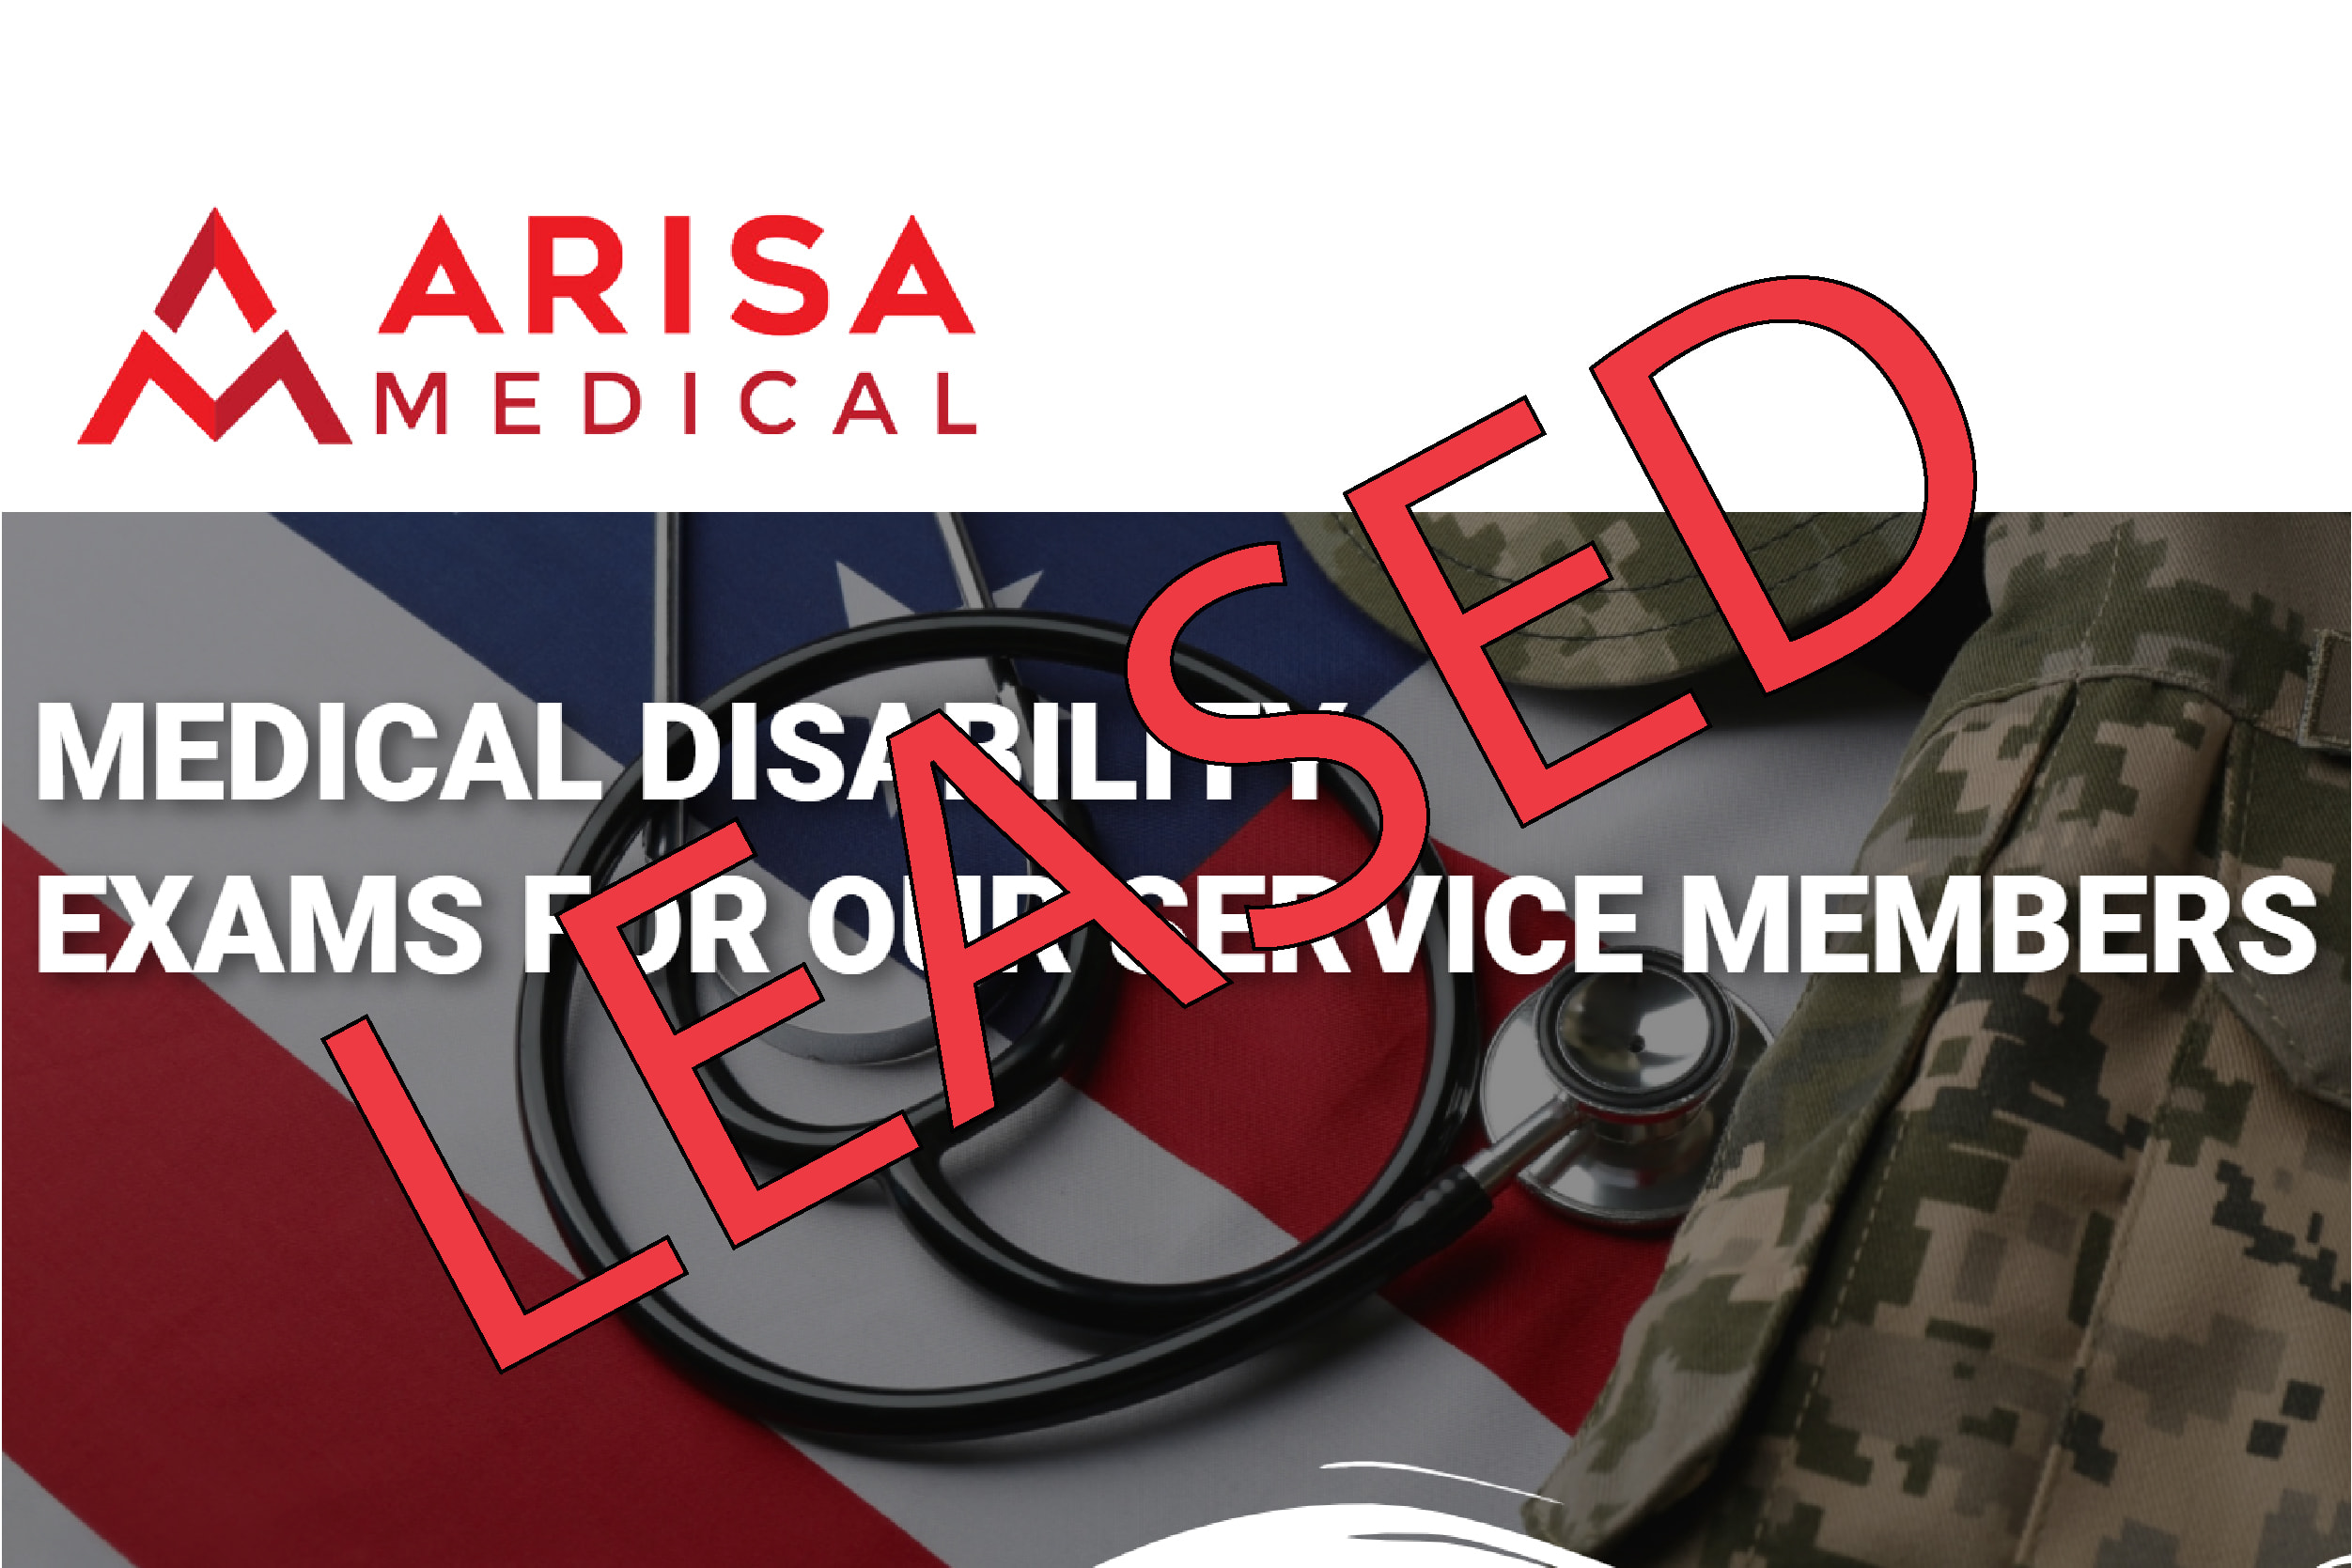 Leased to Arisa Medical